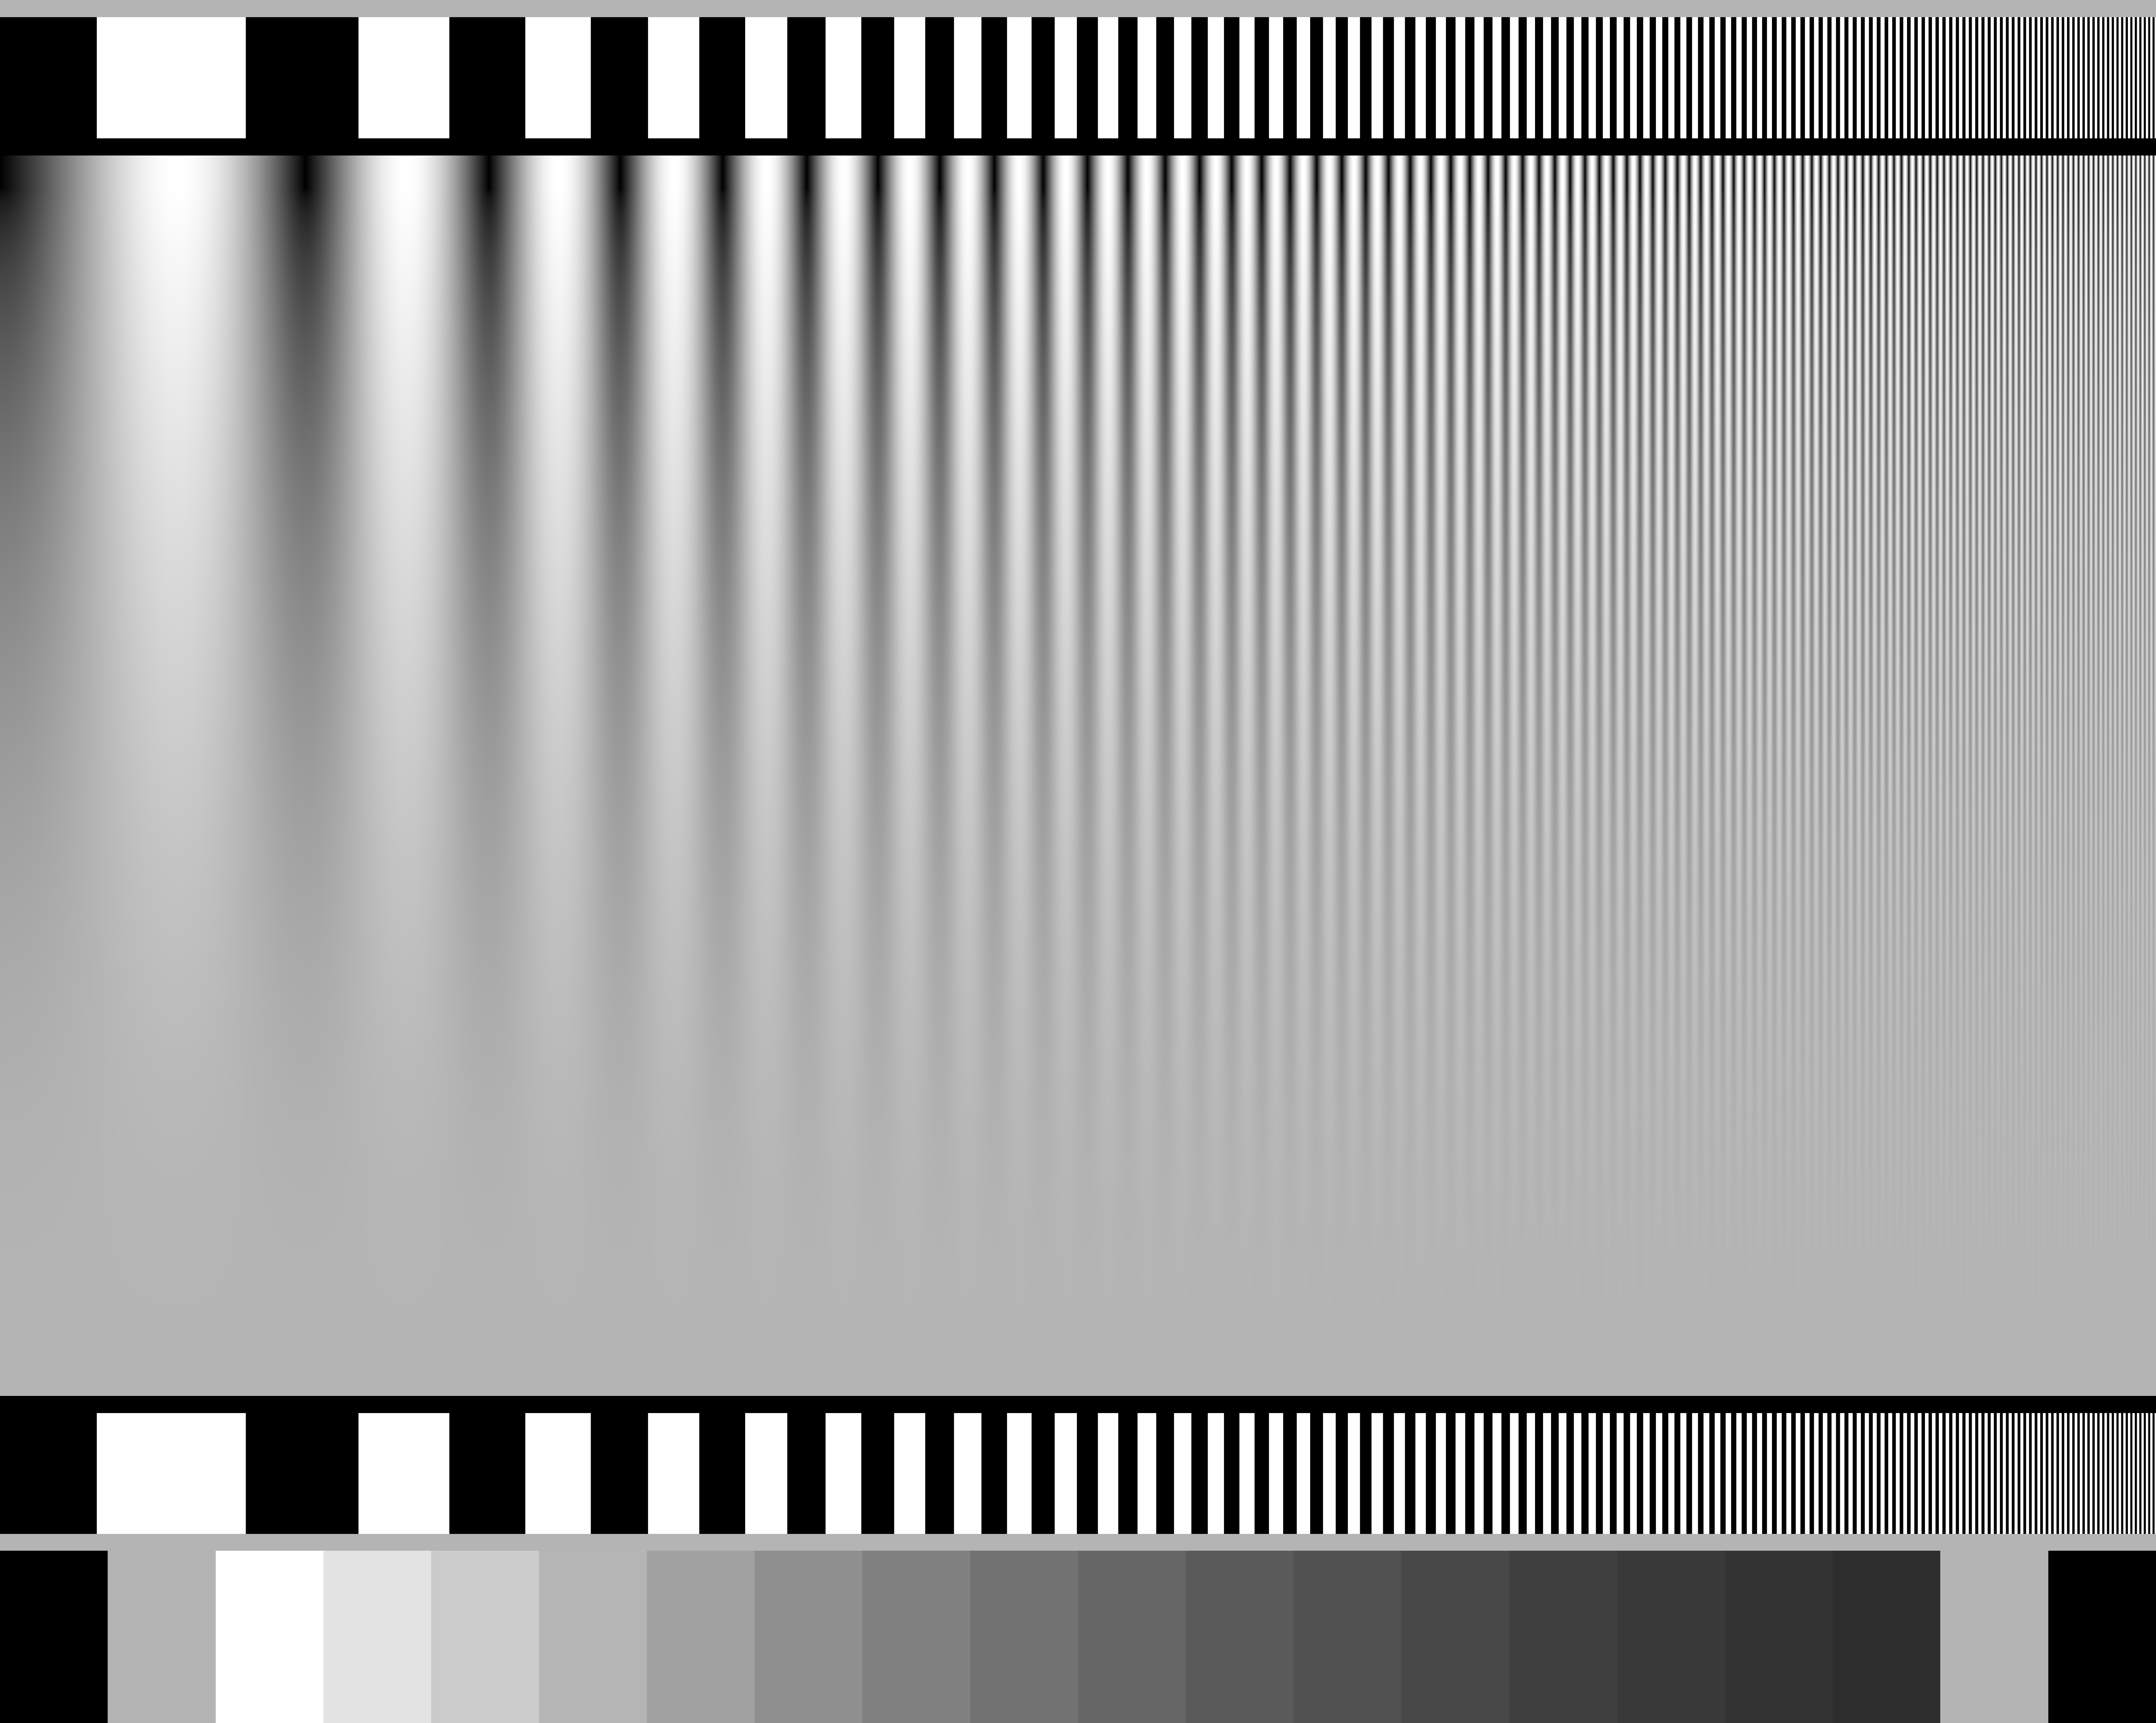 Bars  http://www.bealecorner.org/red/test-patterns/Linear-ZonePlate.png